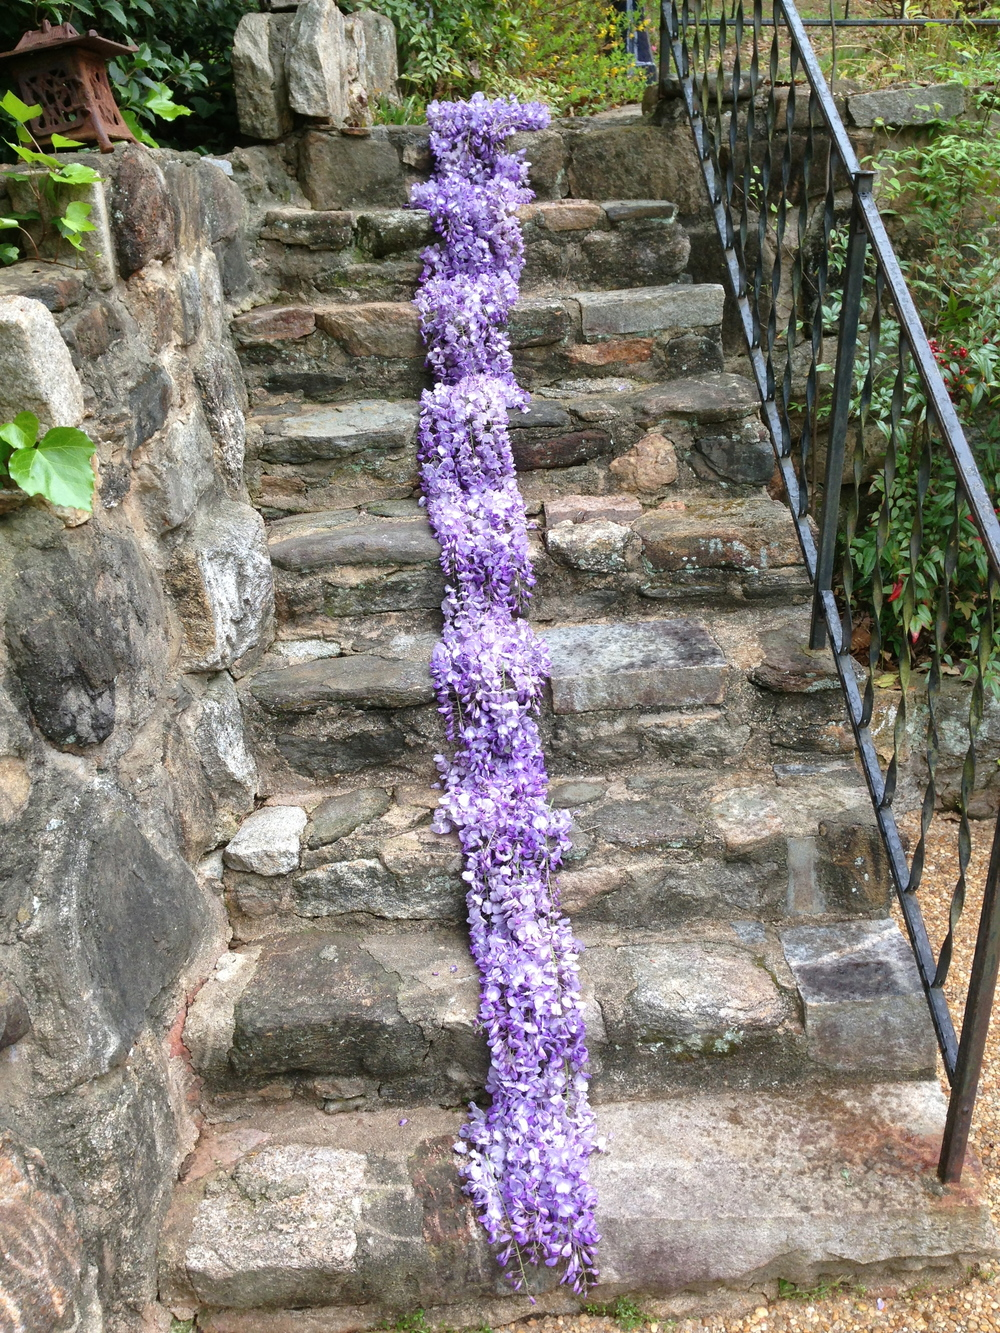 Wisteria flowers on stairs. Athens, GA. Spring 2013